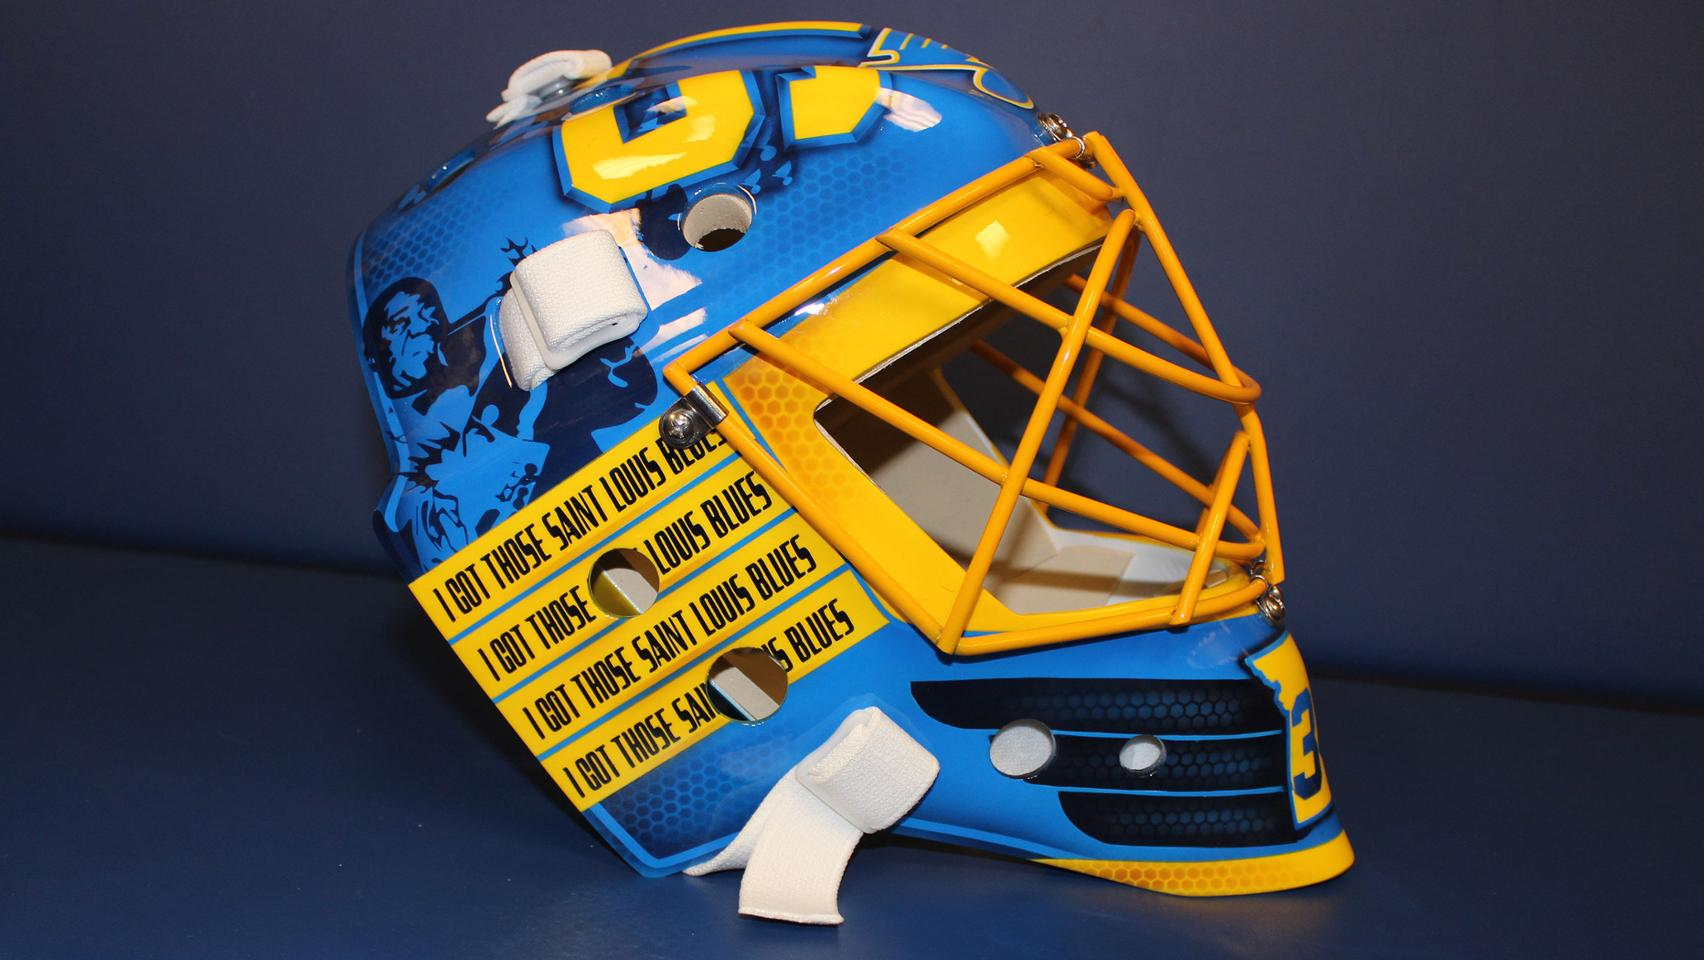 Jake Allen 2017-18 Mask - For Jake Allen's 2017-18 mask, we aimed to pay homage to the classic St. Louis Blues. With images of the classic Blues logo, Louis Armstrong, and lyrivs to classic blues songs, this simple yet sharp design creates a timeless look.